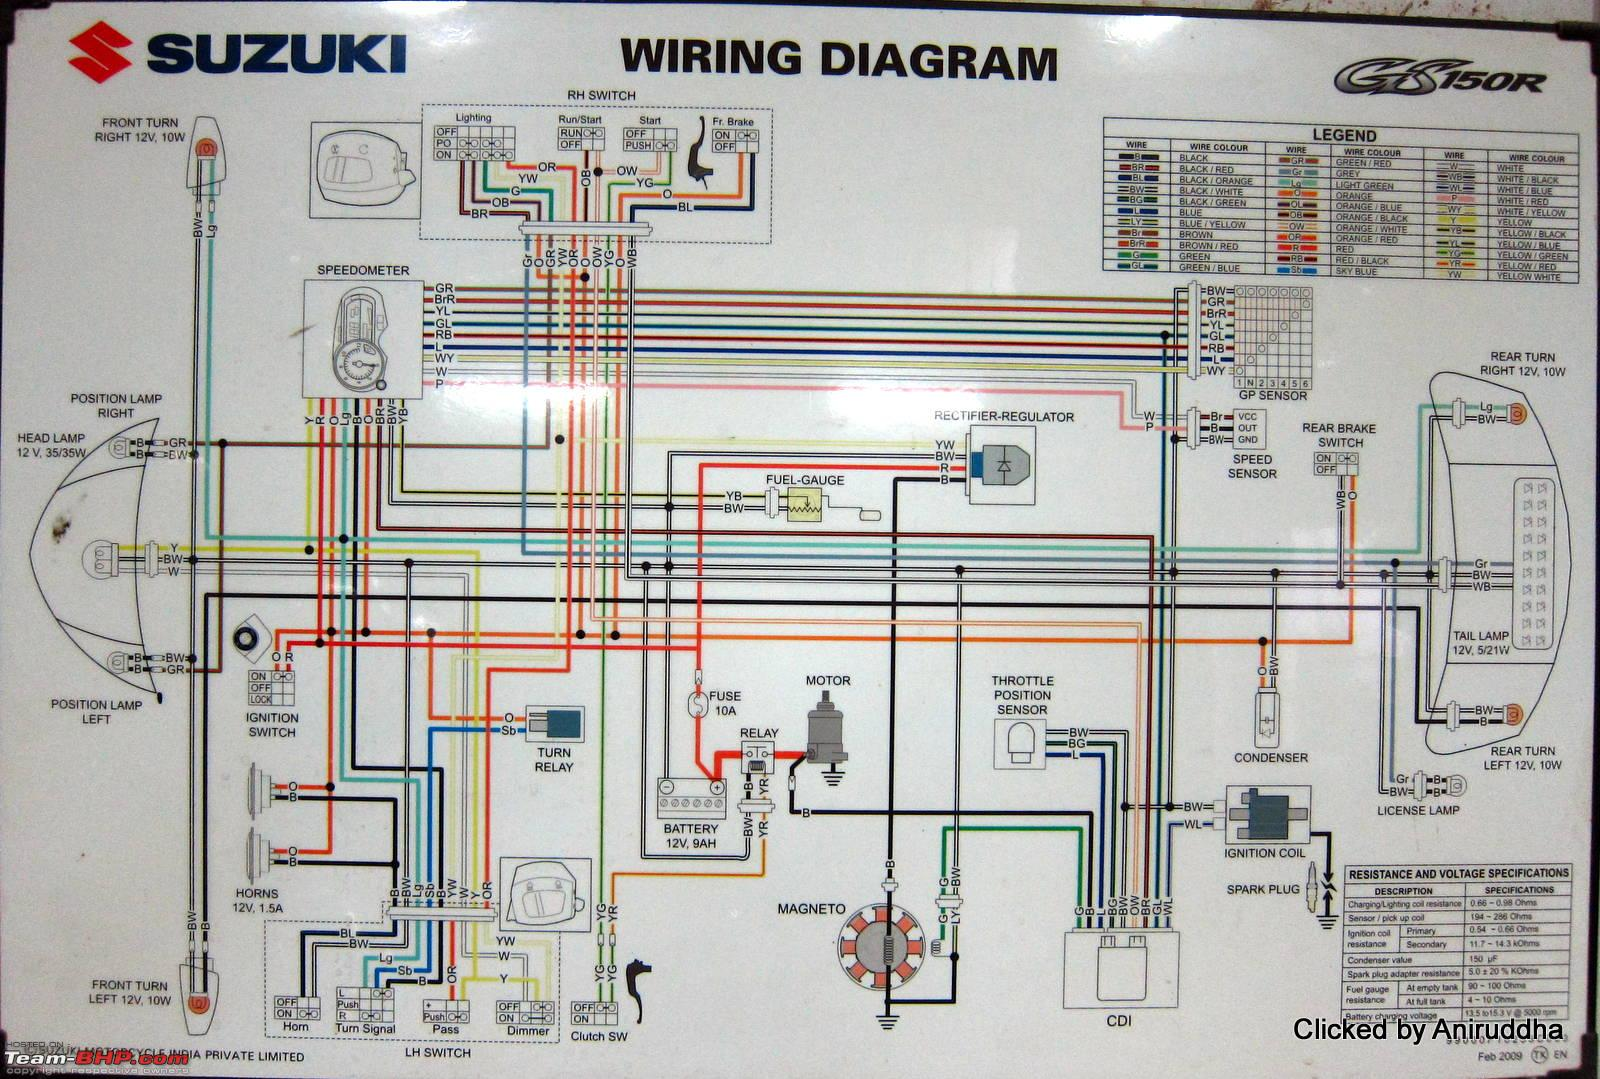 WRG-1178] Suzuki 160 4 Wheeler Wiring Diagram